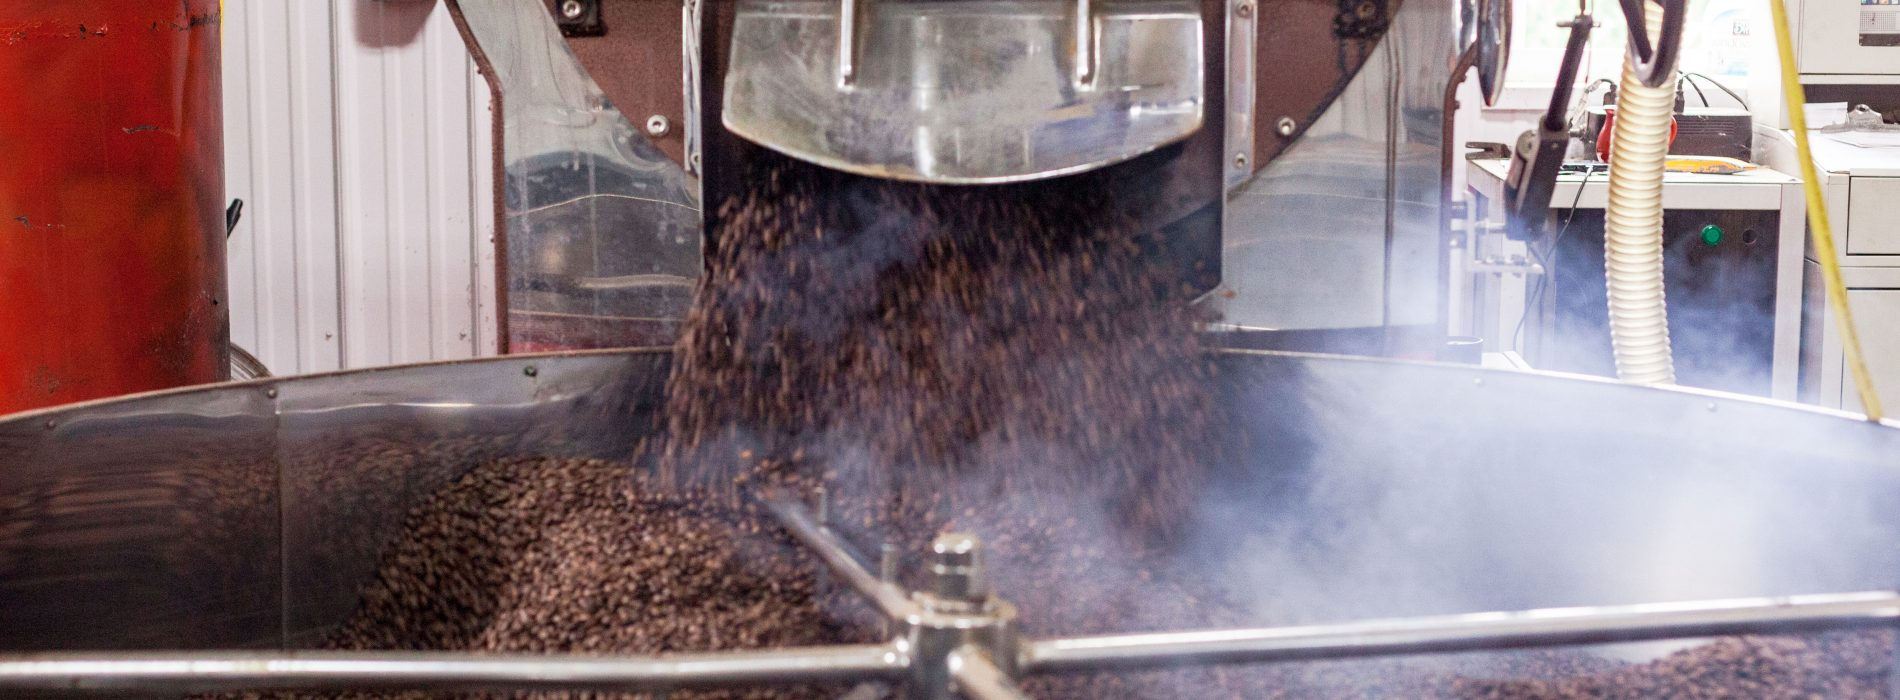 freshly roasted coffee coming out of coffee roaster